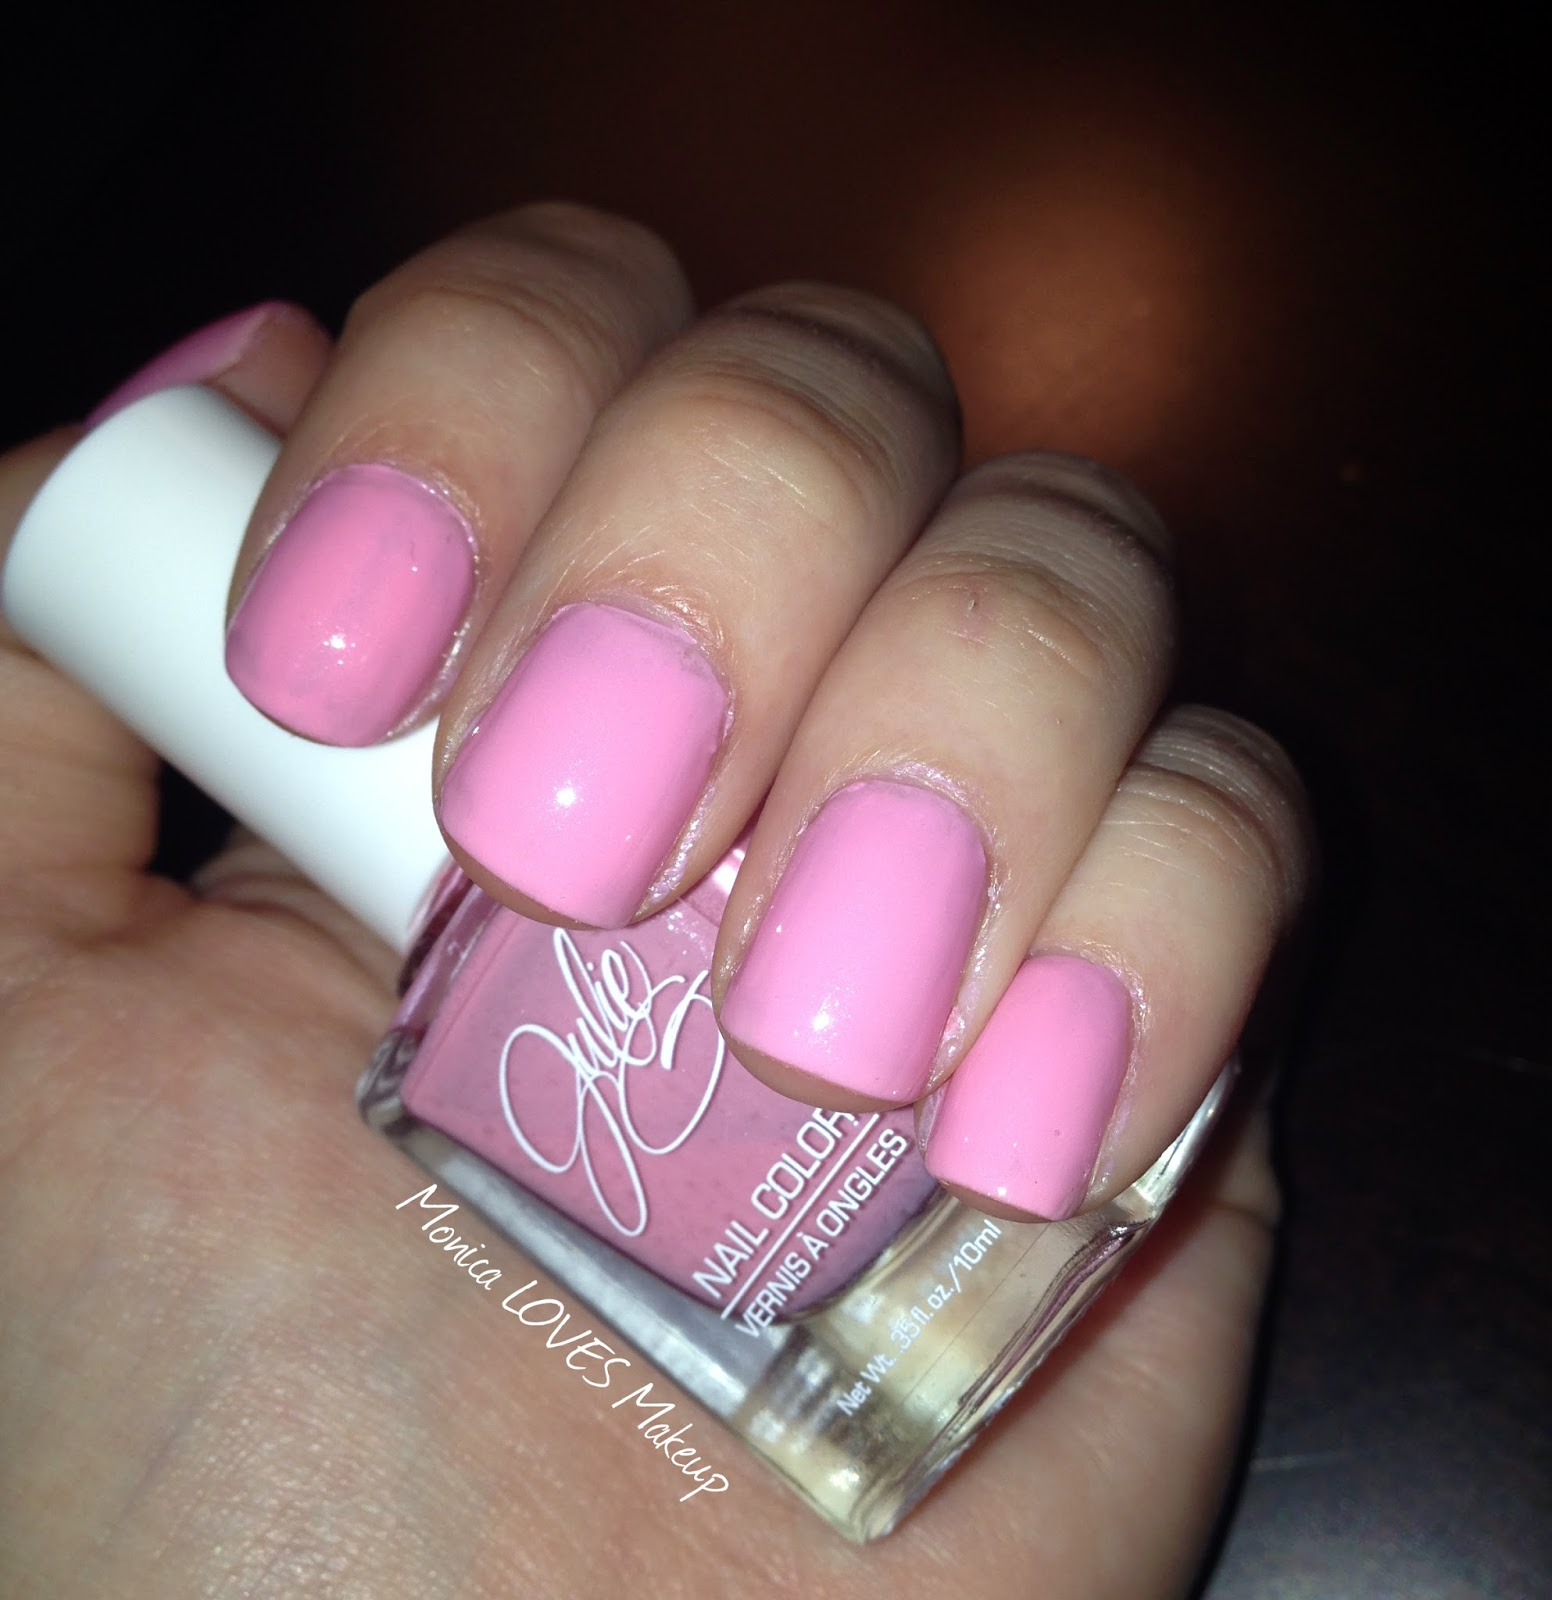 "Cotton Candy Satin Fingernail Polish: Monica LOVES Makeup: Julie G Nail Color ""Cotton Candy"""